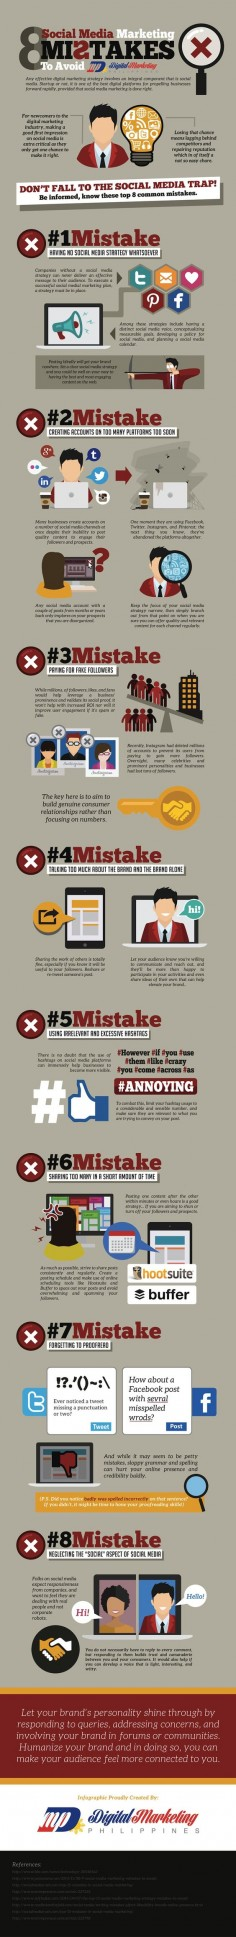 Lots of great tips here! --- Social Media Marketing Mistakes